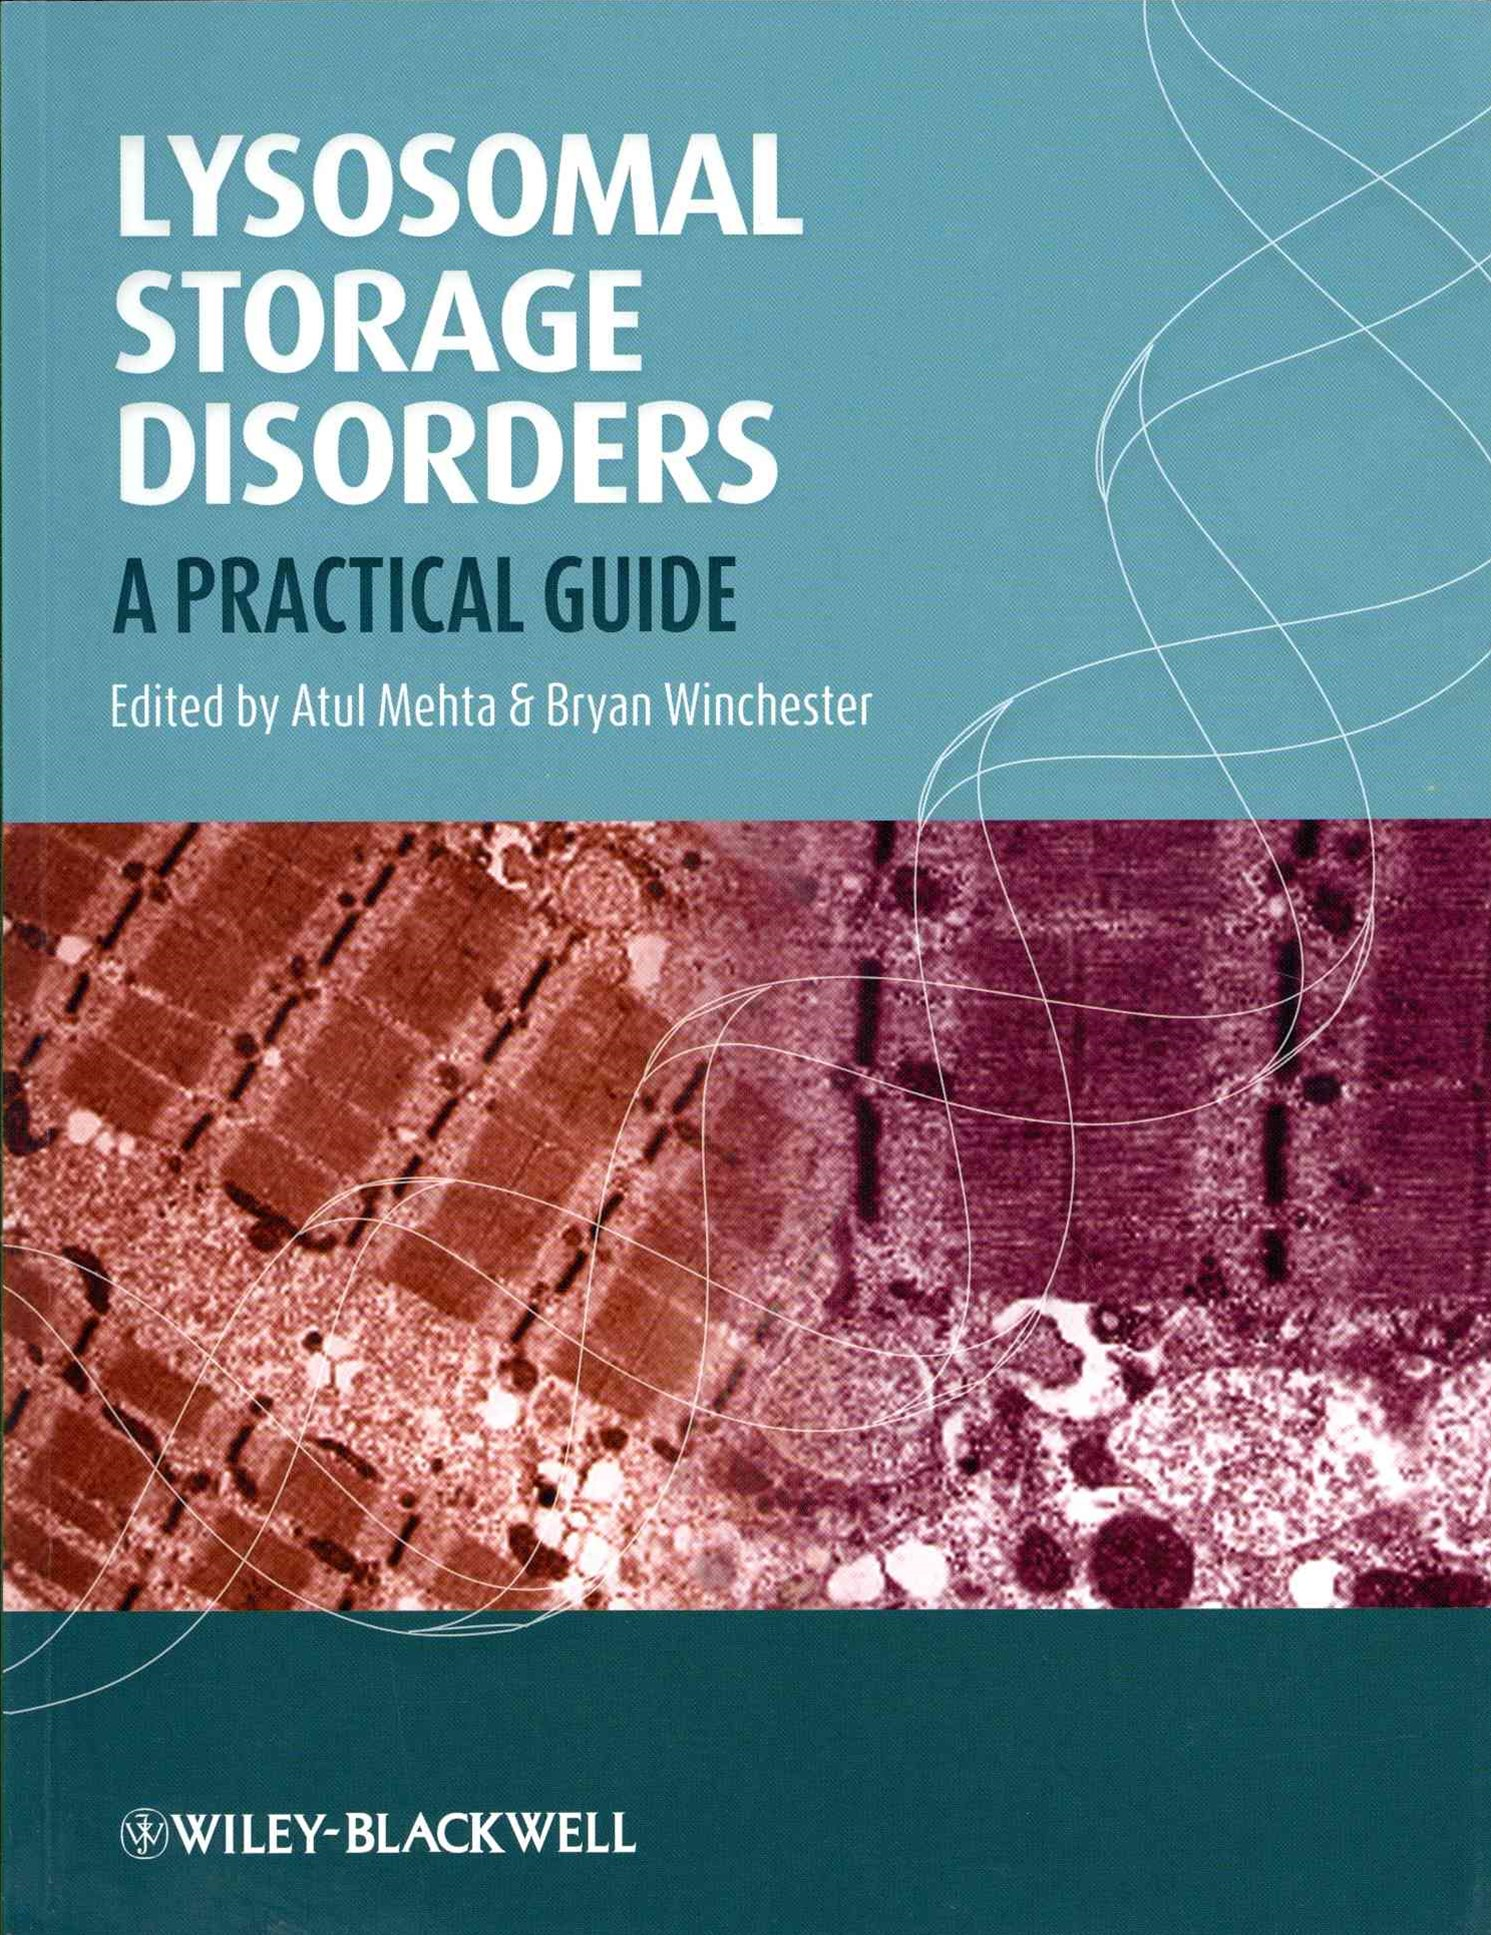 Lysosomal Storage Disorders - a Practical Guide